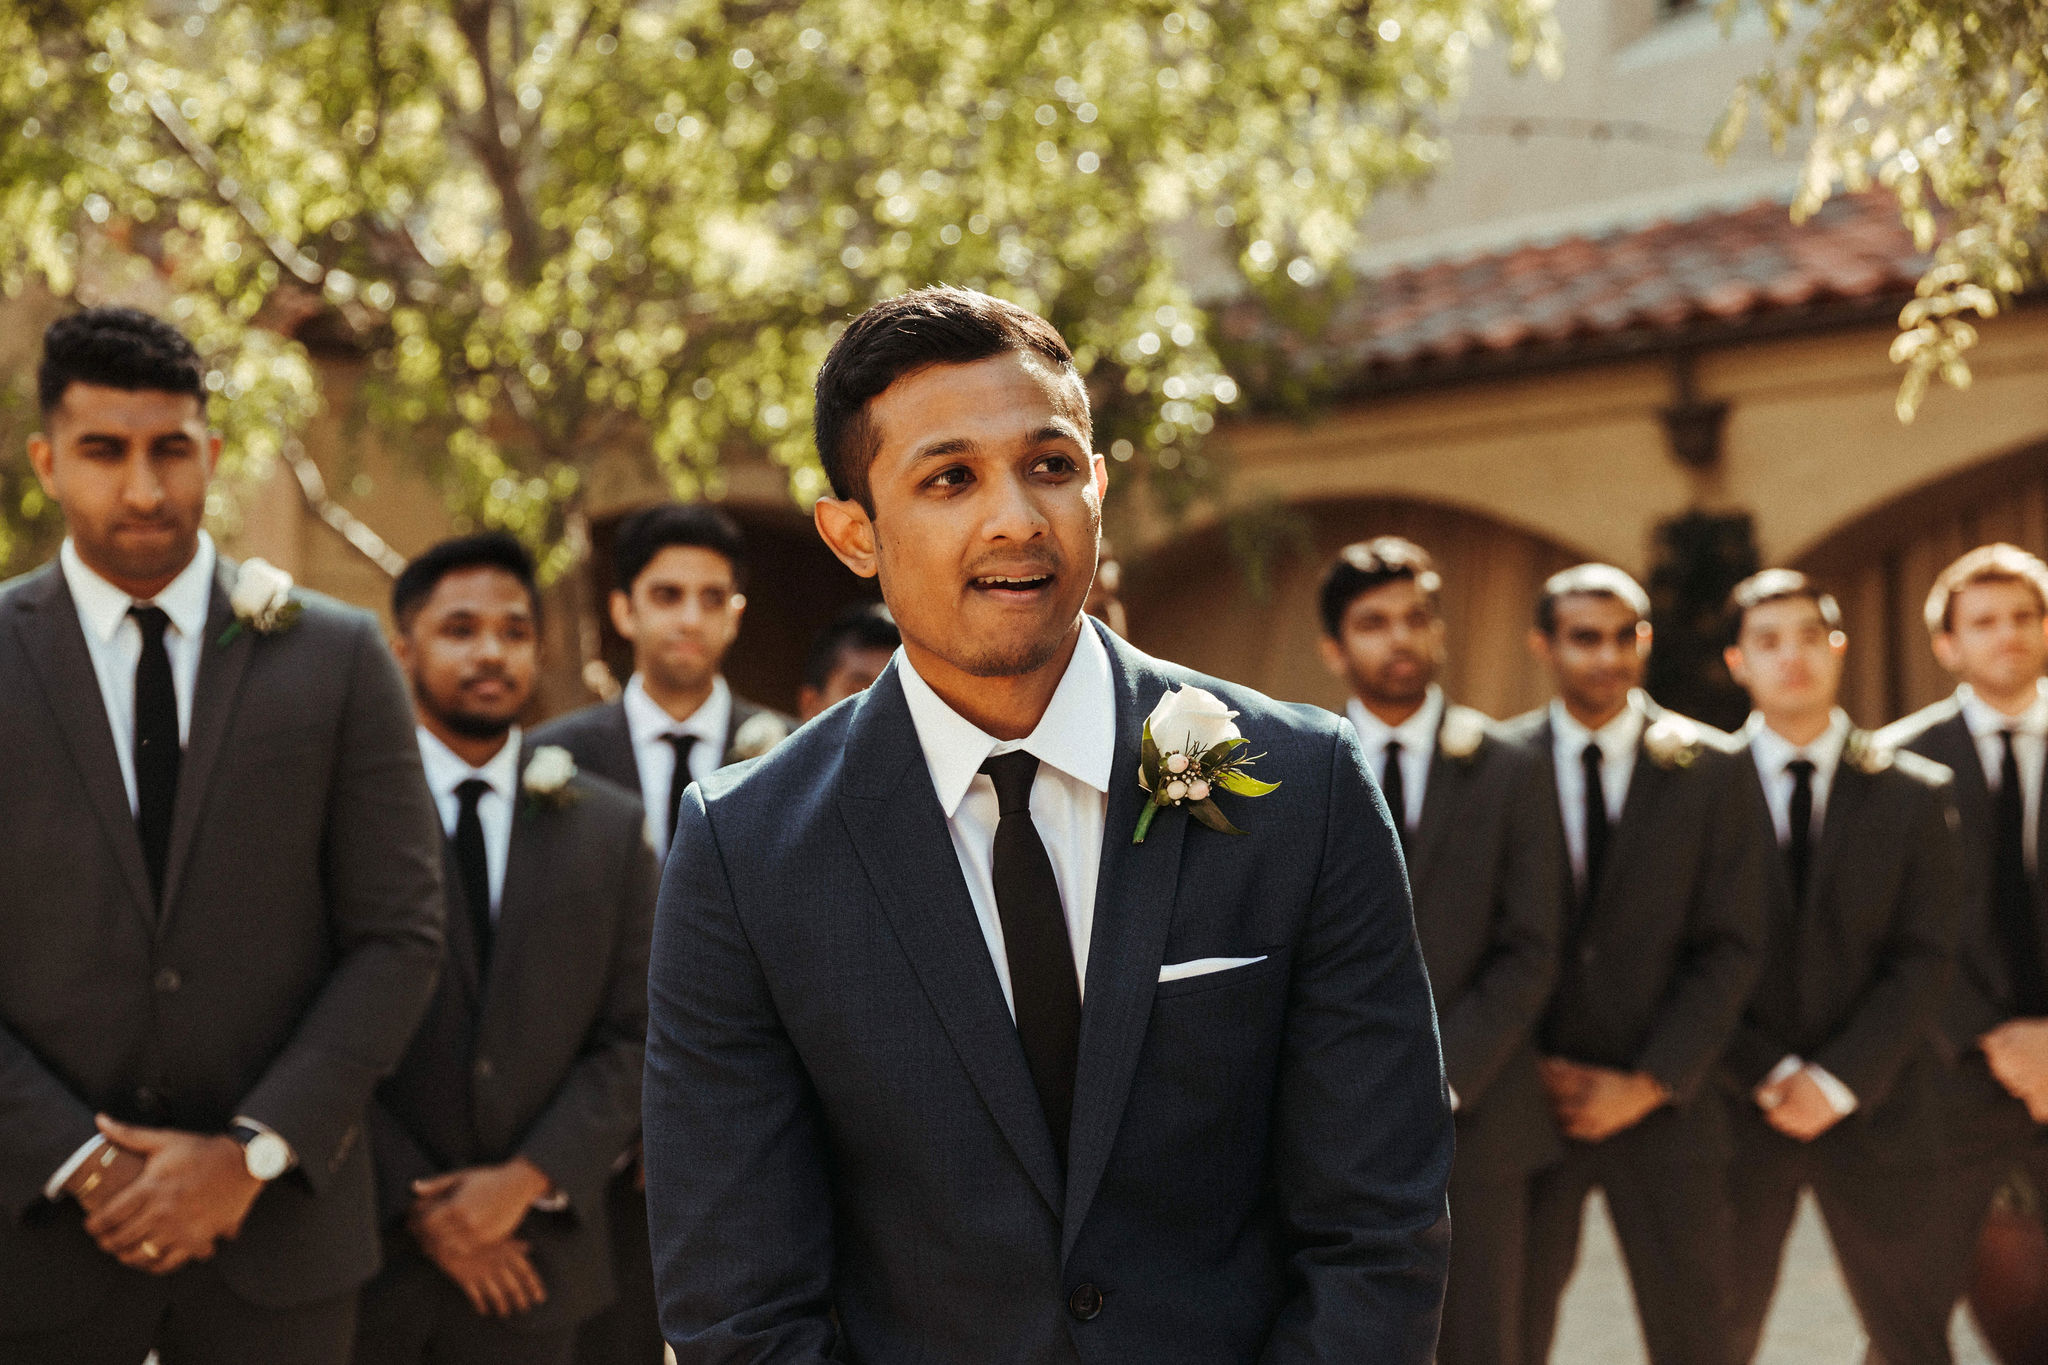 Groom cries as he sees his bride walking down the aisle for the first time